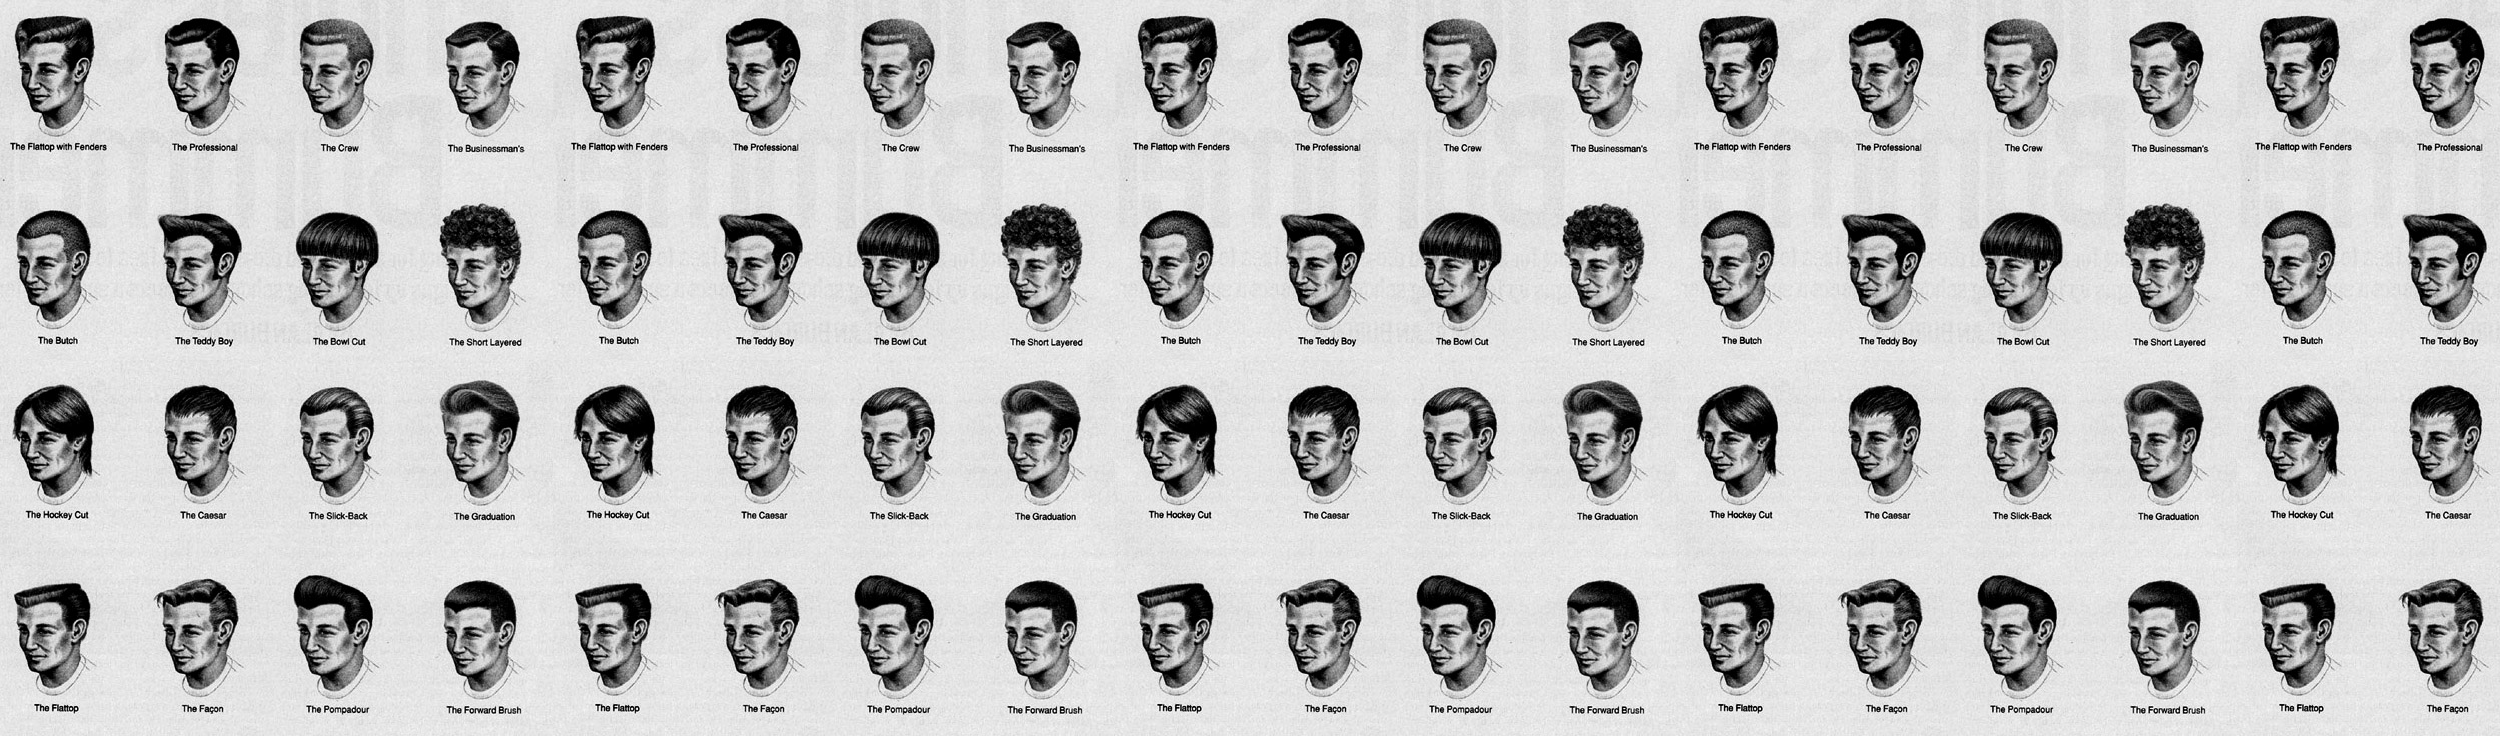 Hairstyles For Men Does Your Haircut Fit Your Face? • Effortless Gent